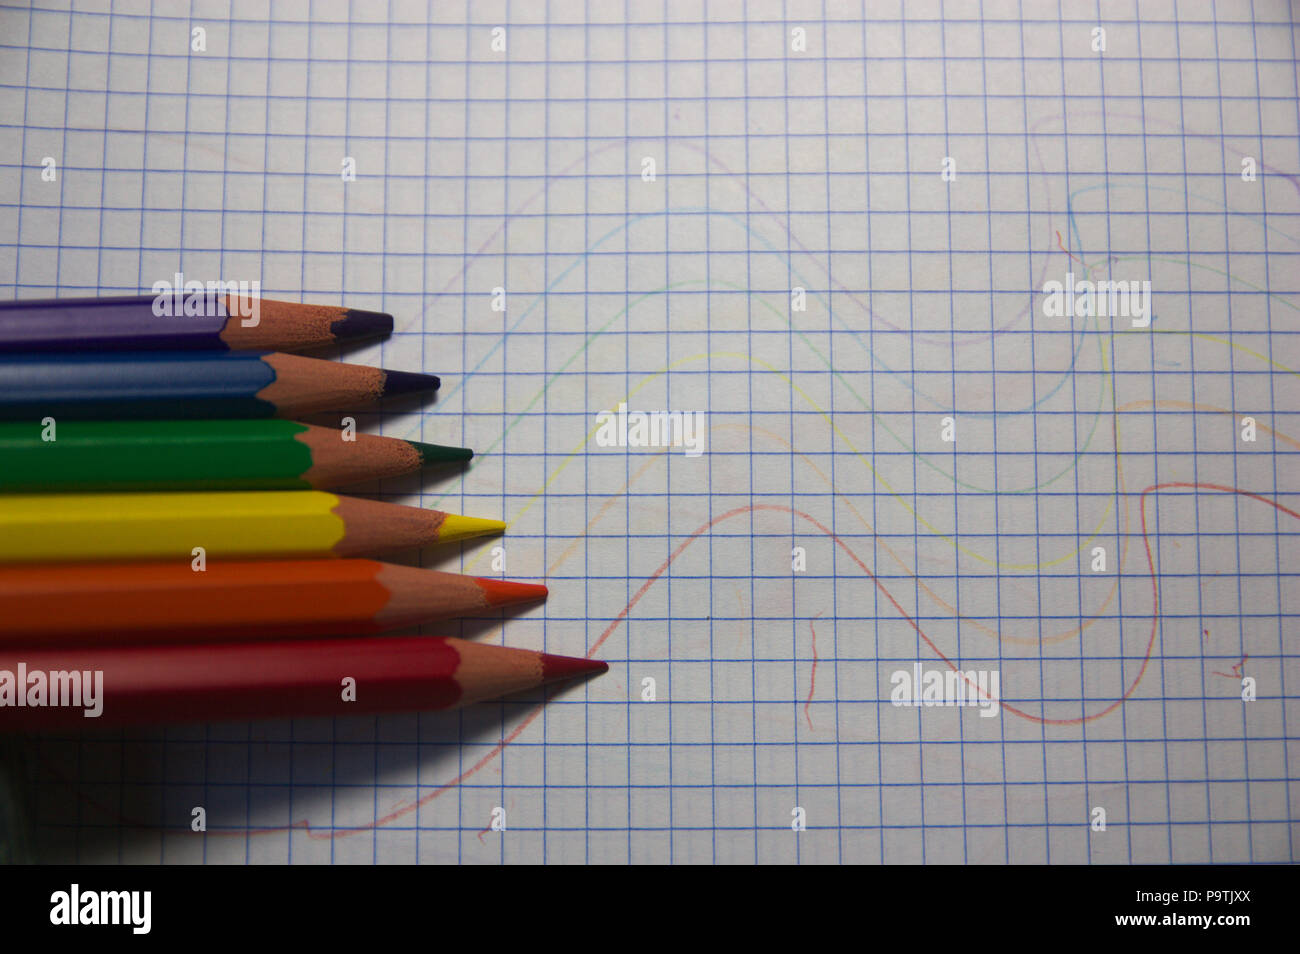 Colored pencils with the colors flag LGTBI - Stock Image